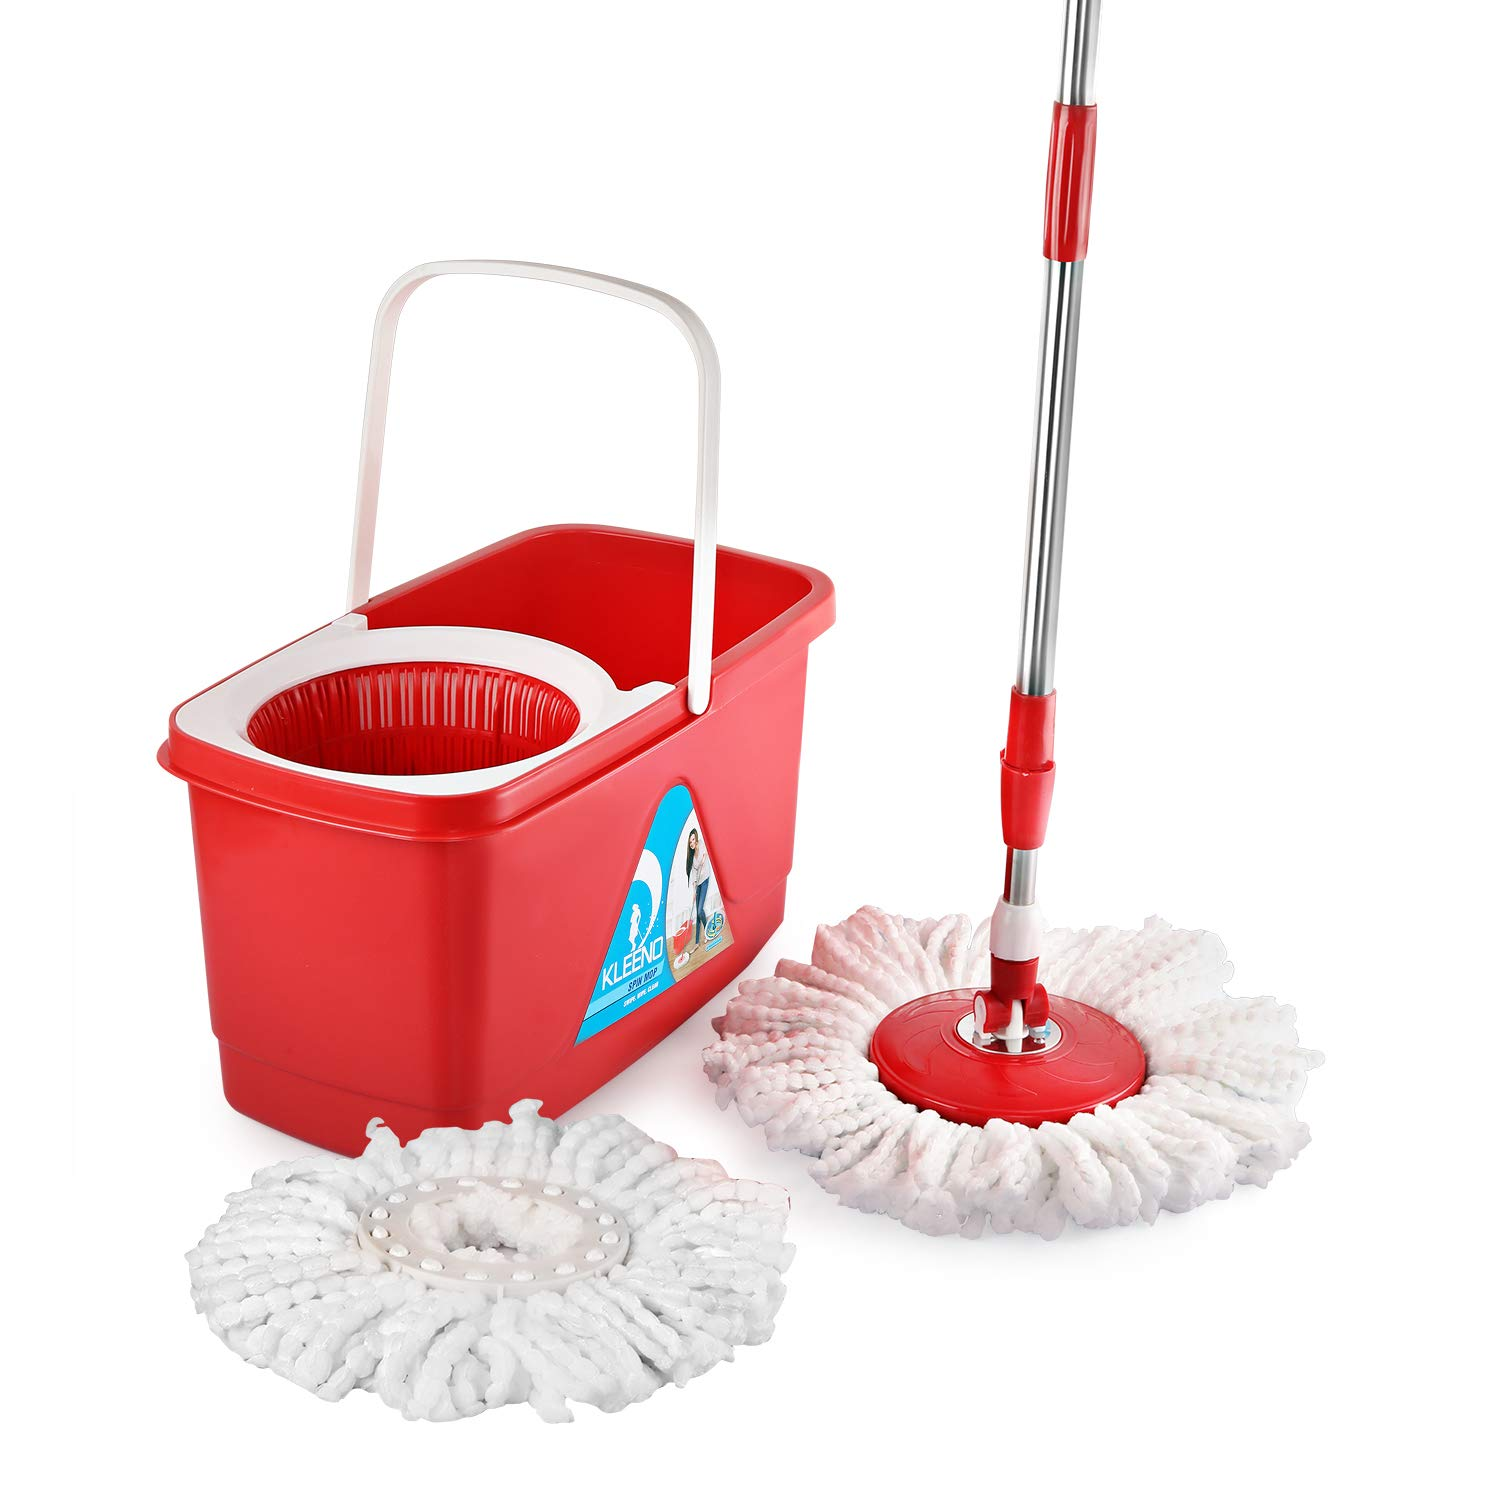 Cello Easy Clean 360 Degree Plastic Bucket Spin Floor Cleaning Mop